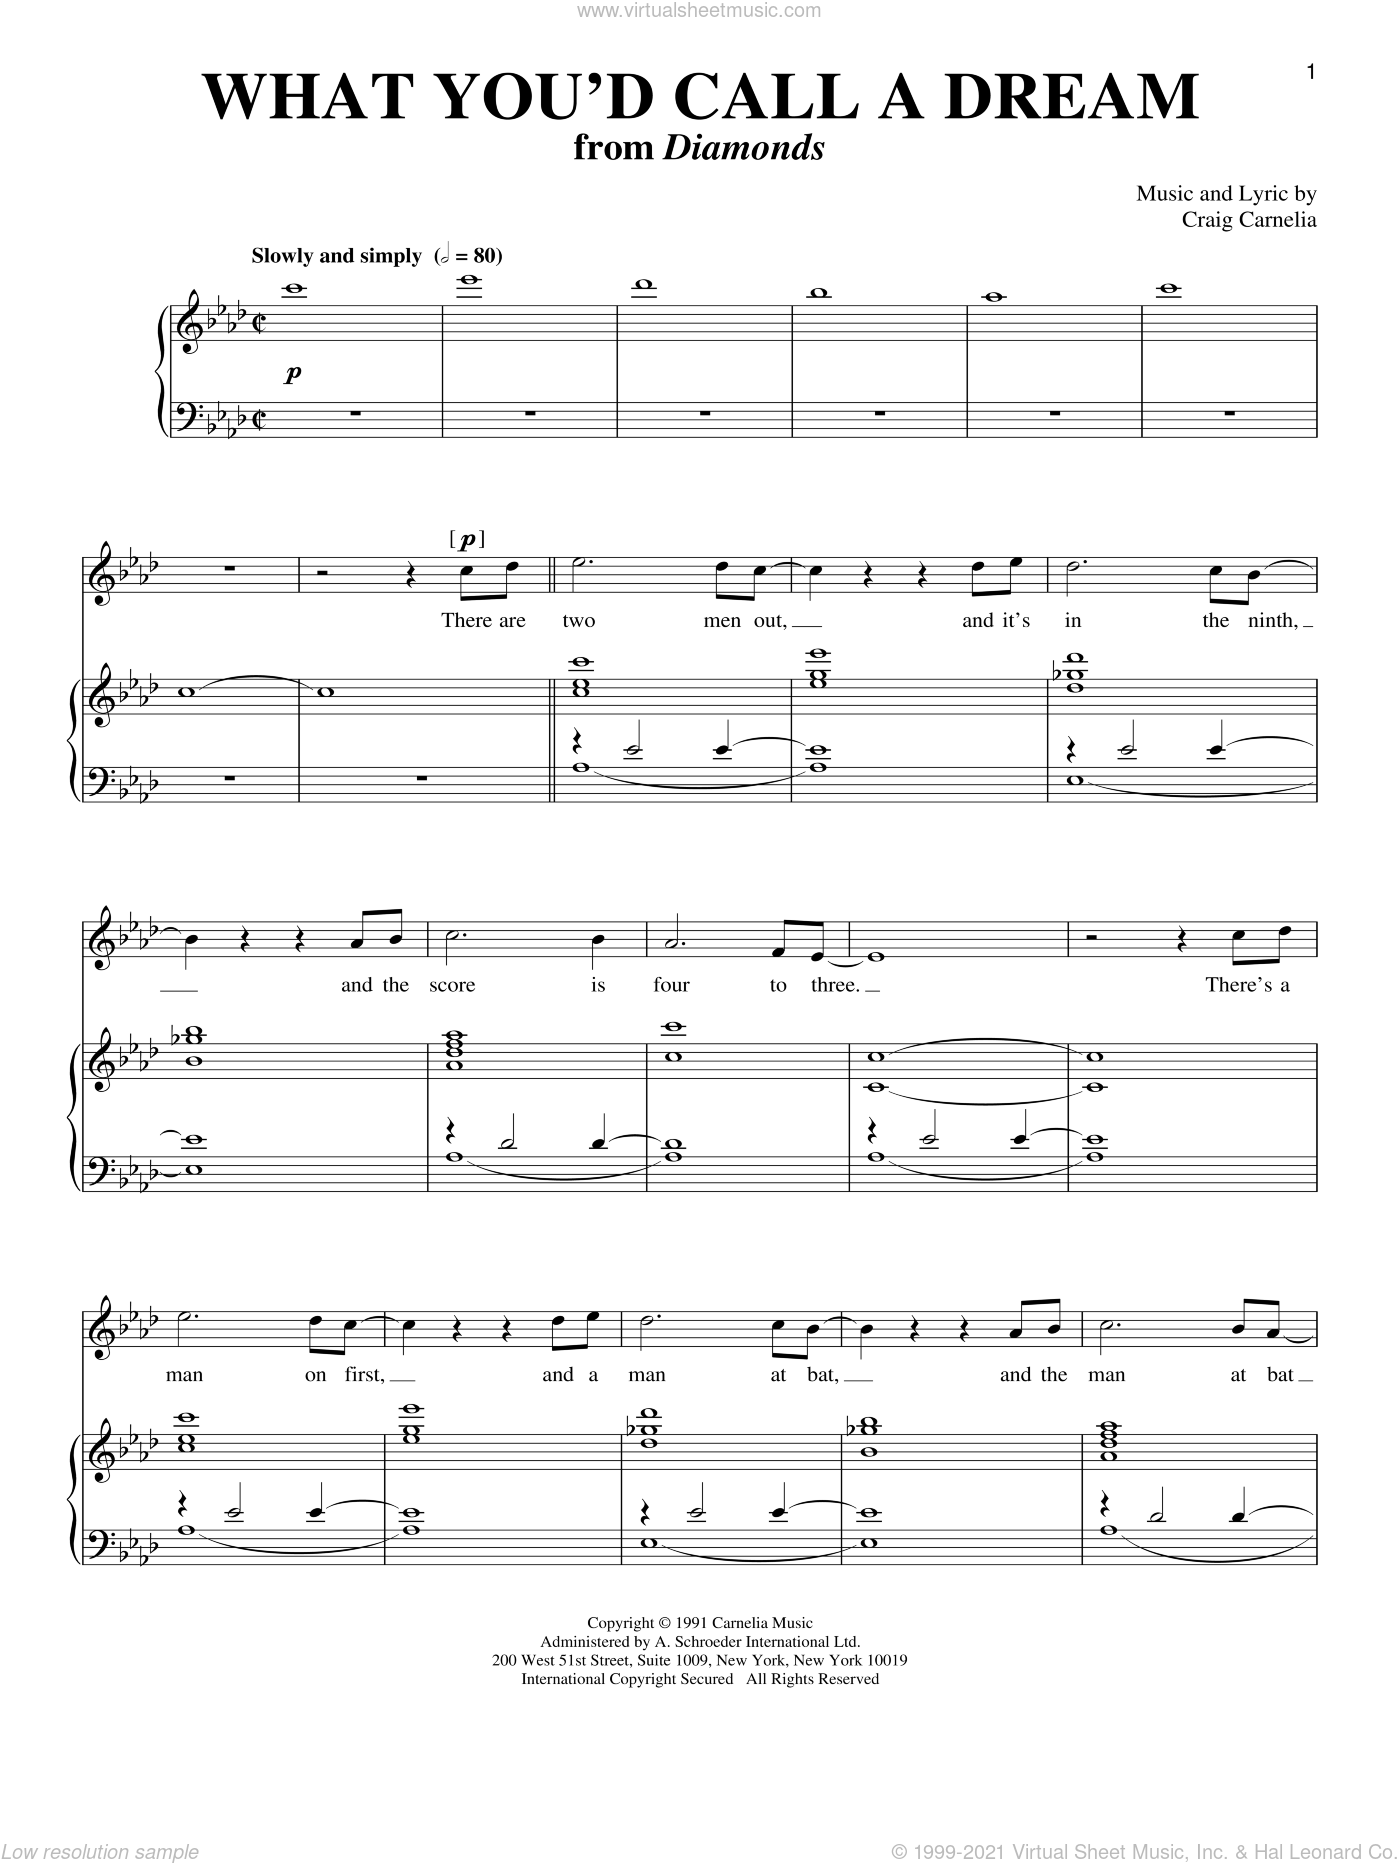 What You'd Call A Dream sheet music for voice and piano by Craig Carnelia